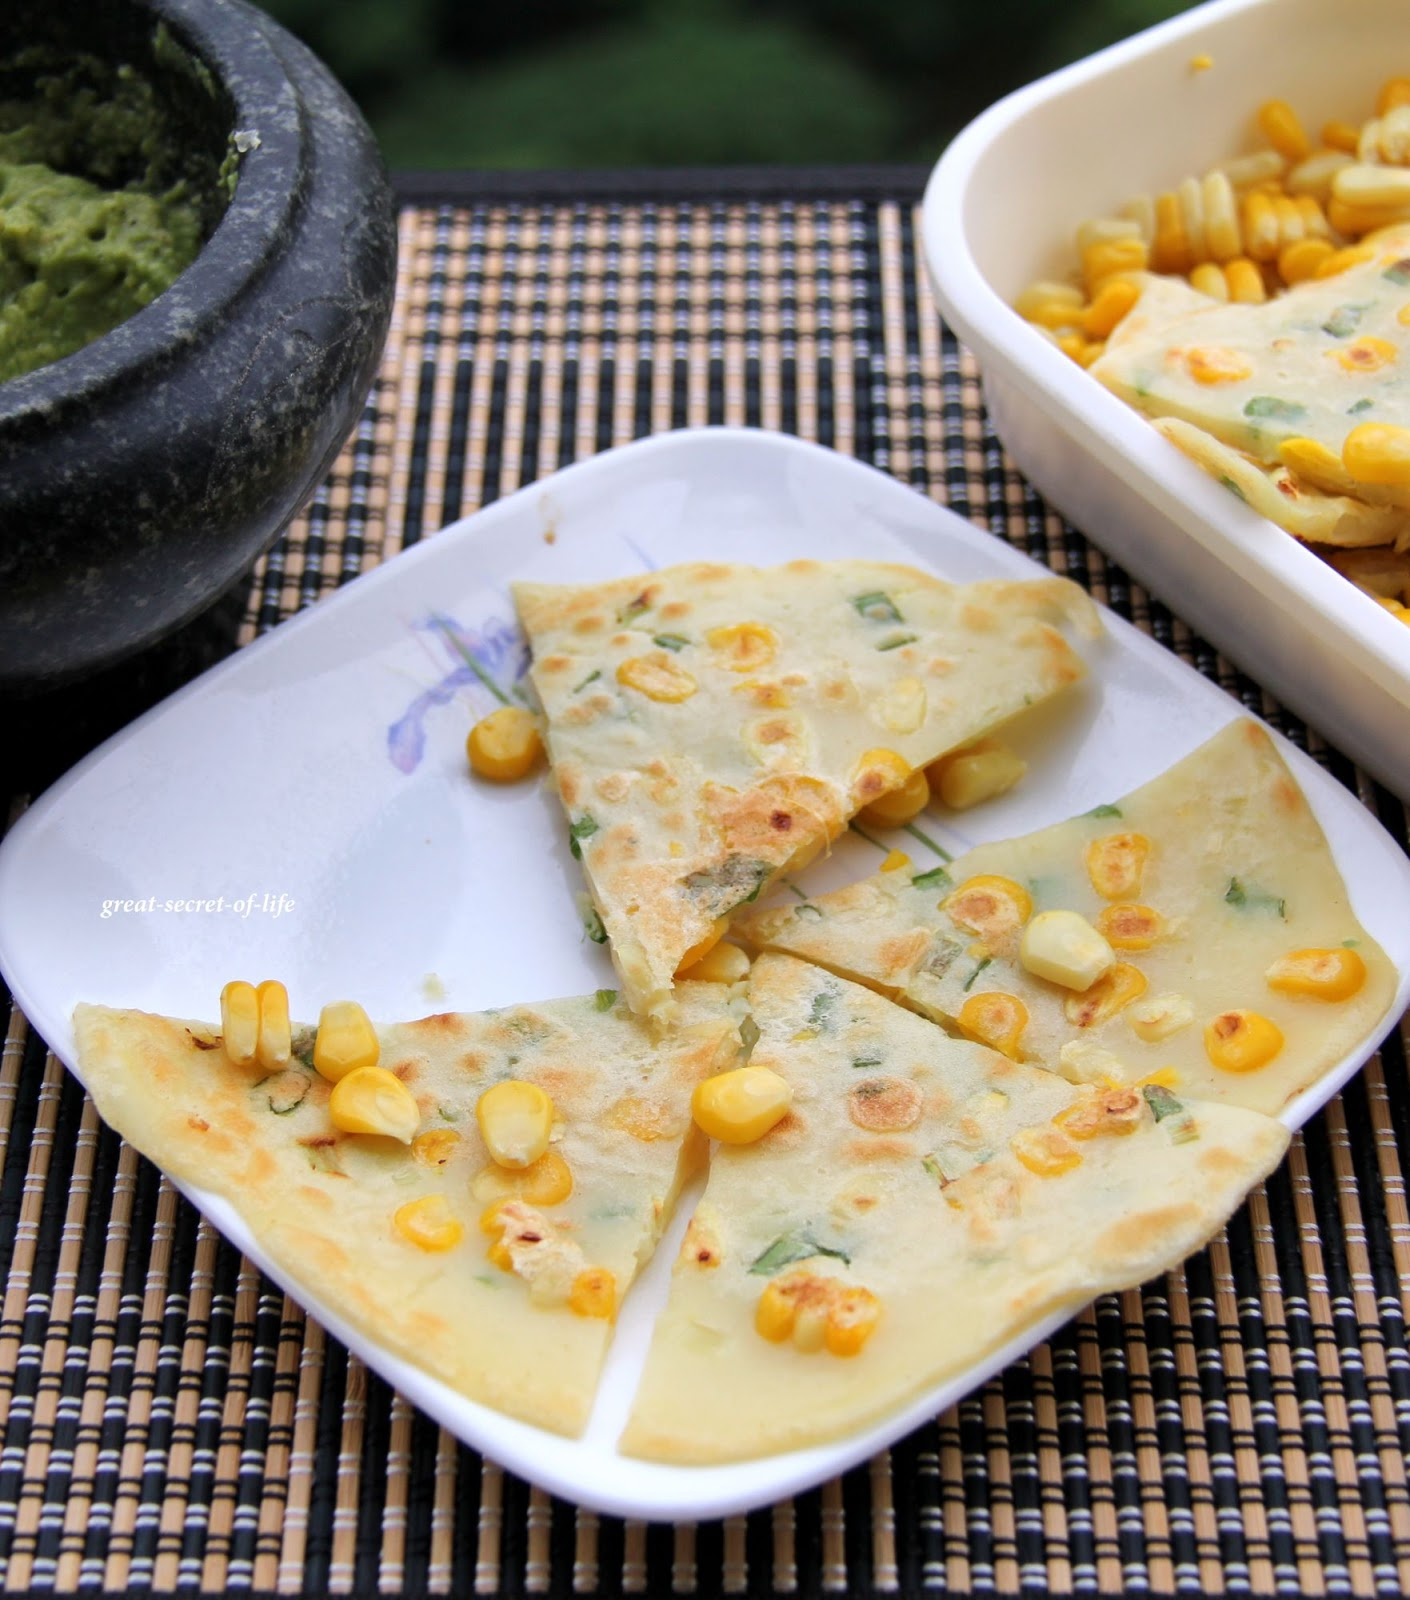 Korean Corn Pancake| Great-secret-of-life